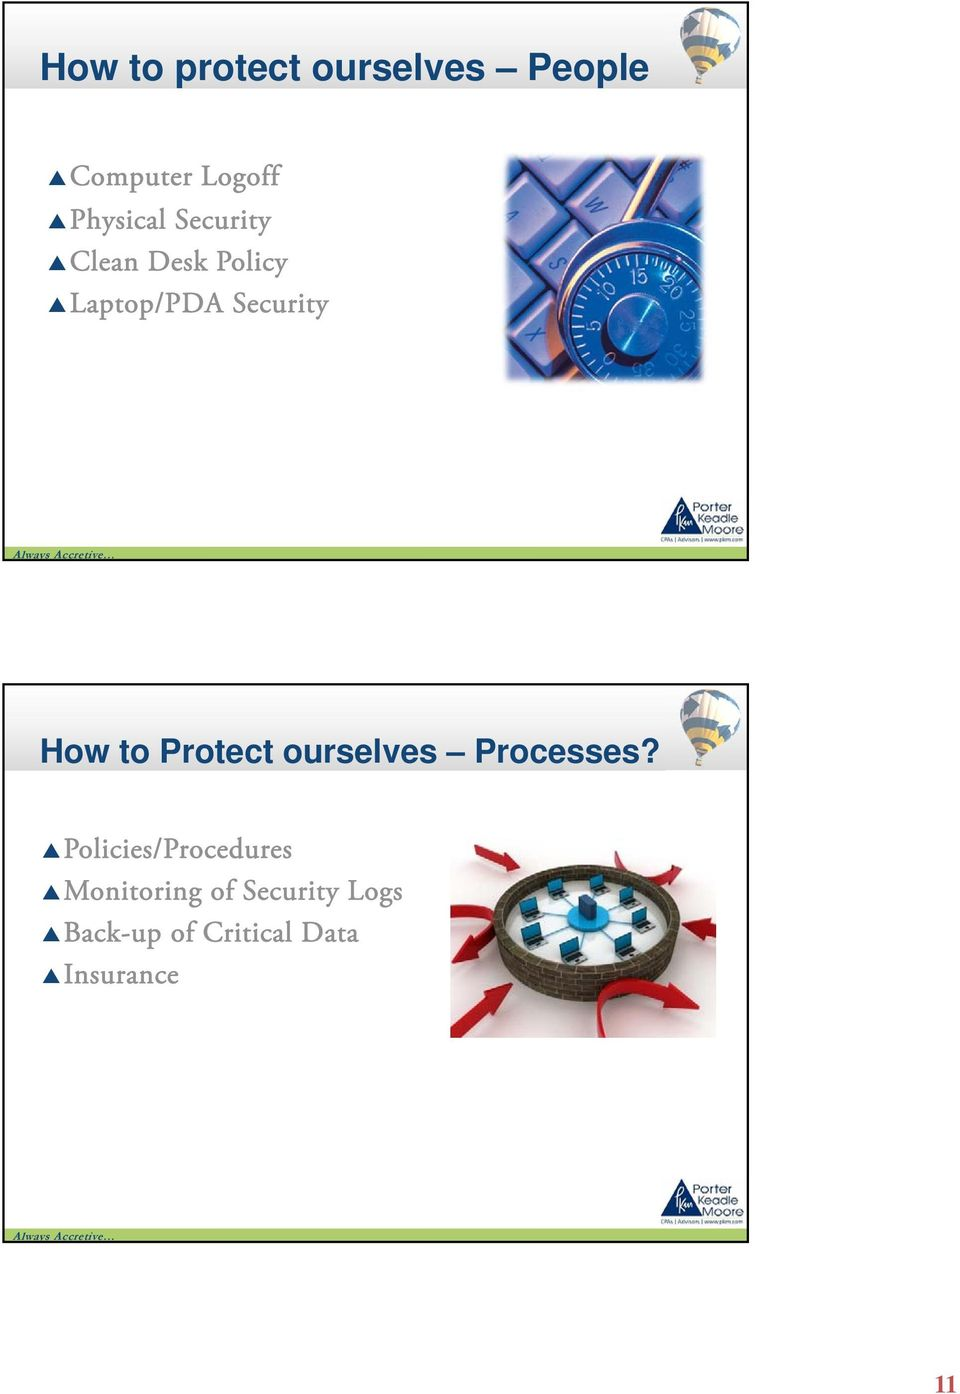 Protect ourselves Processes?